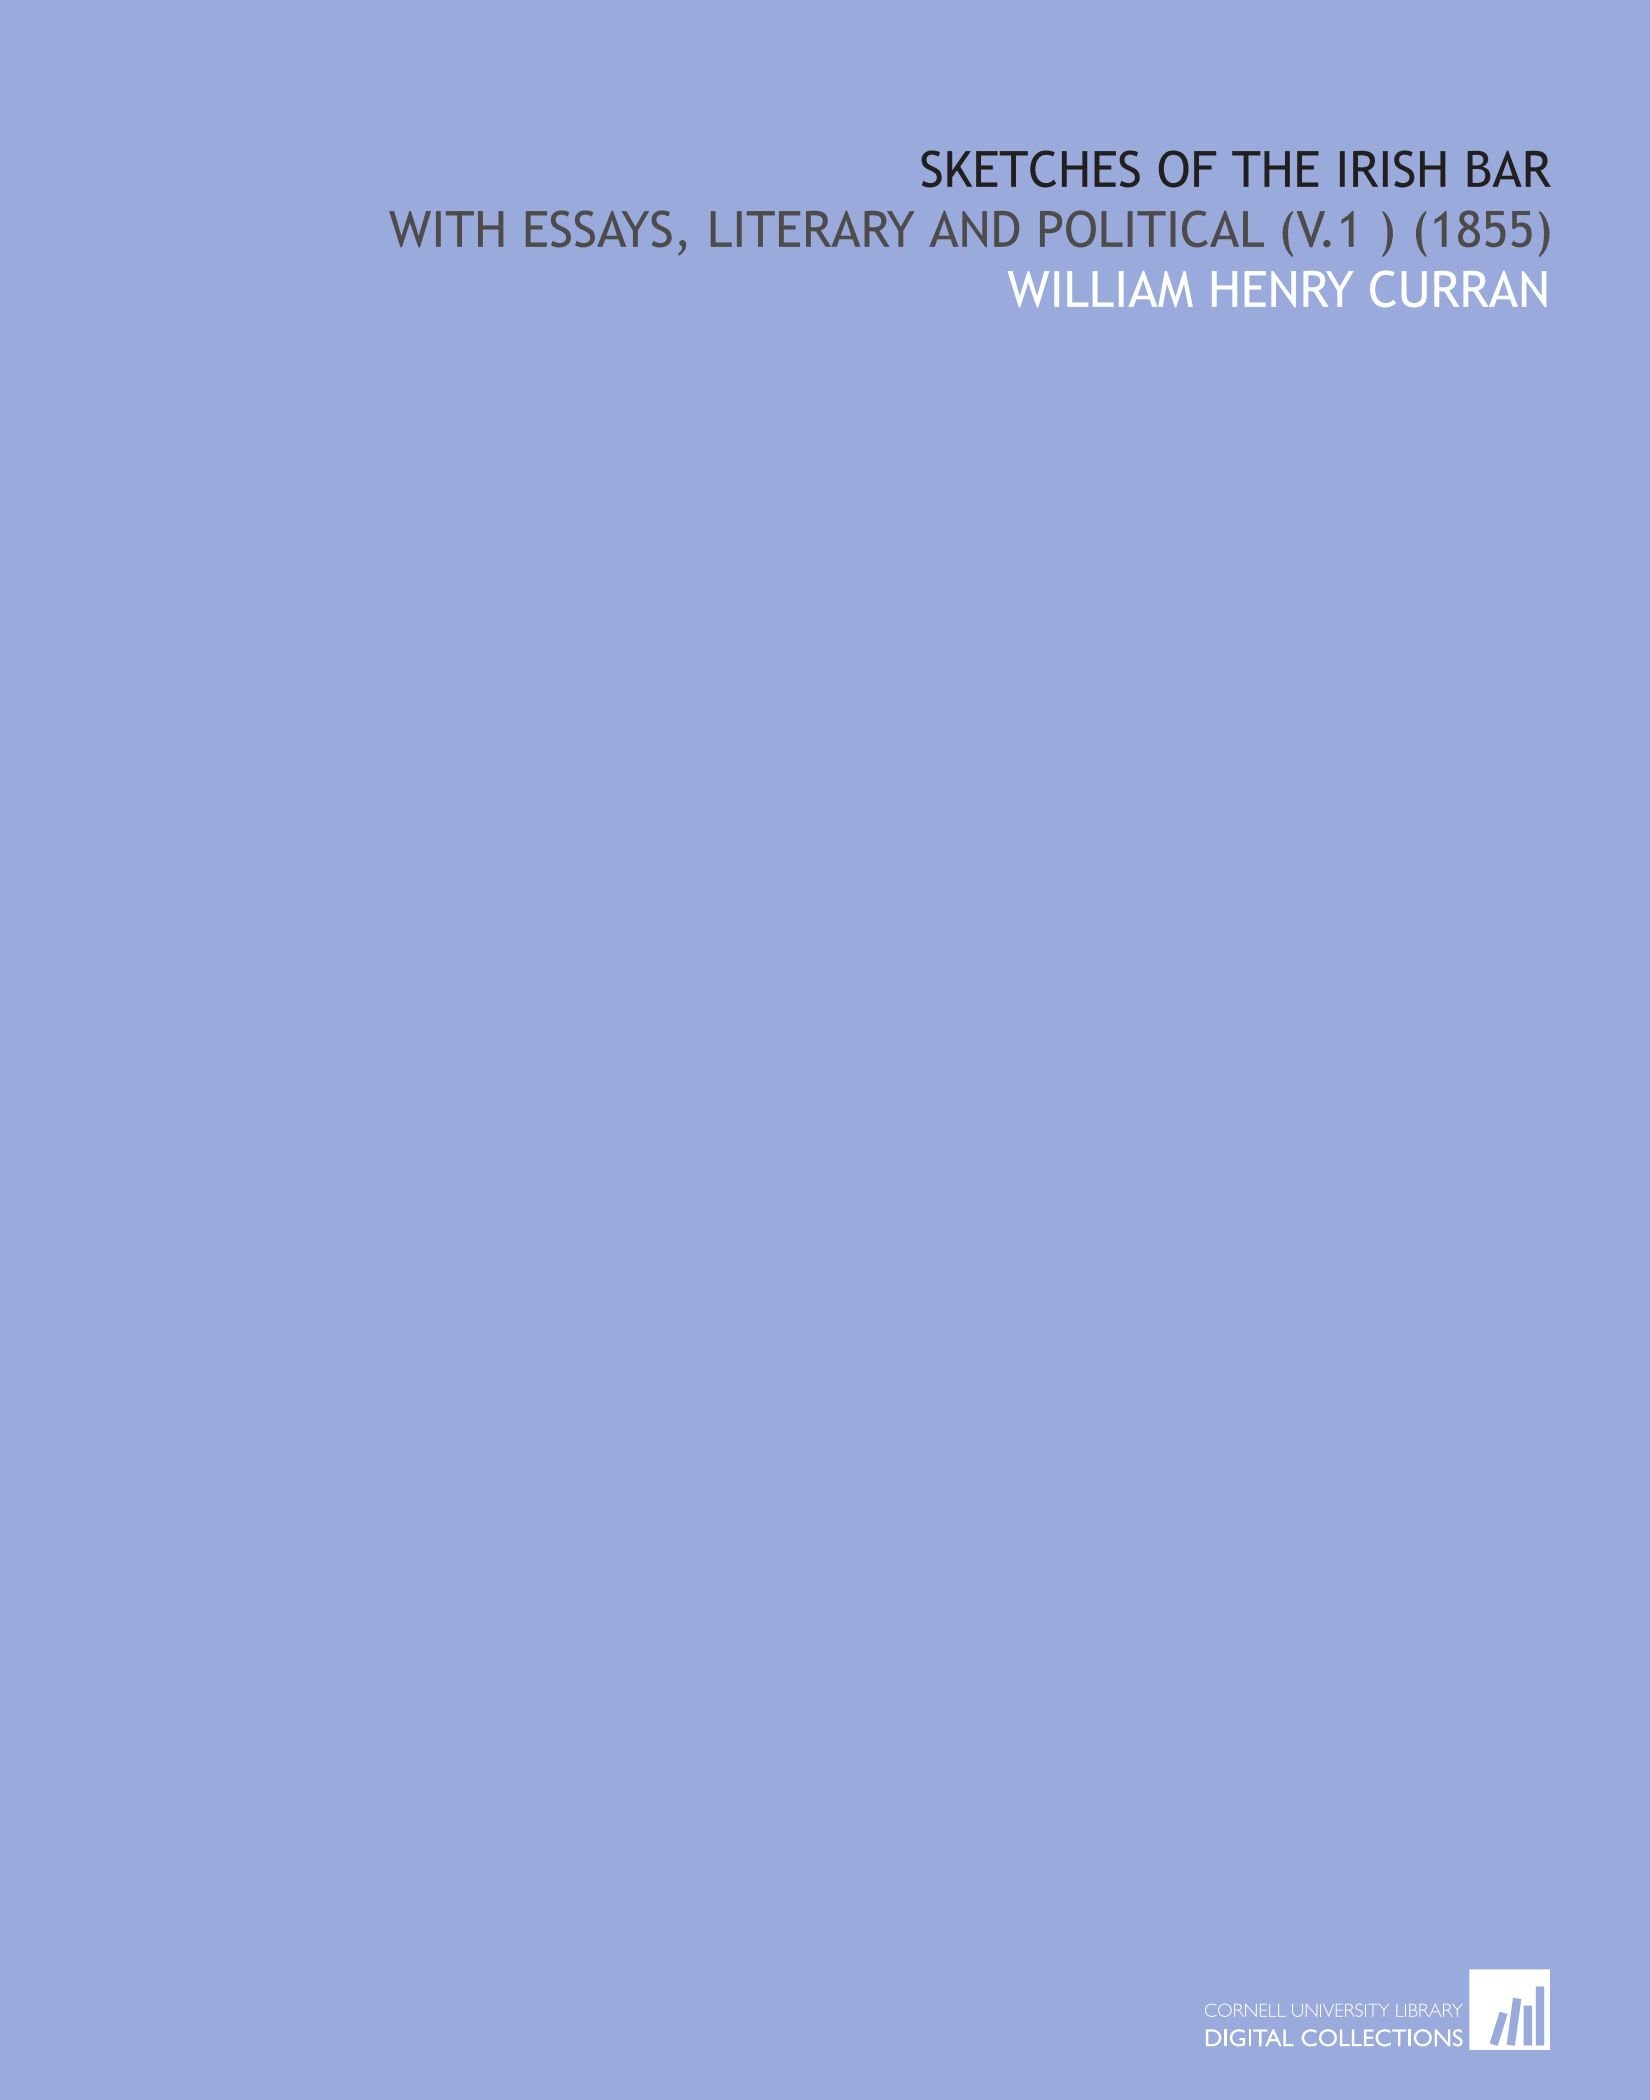 Sketches of the Irish Bar: With Essays, Literary and Political, Vol. 1 pdf epub